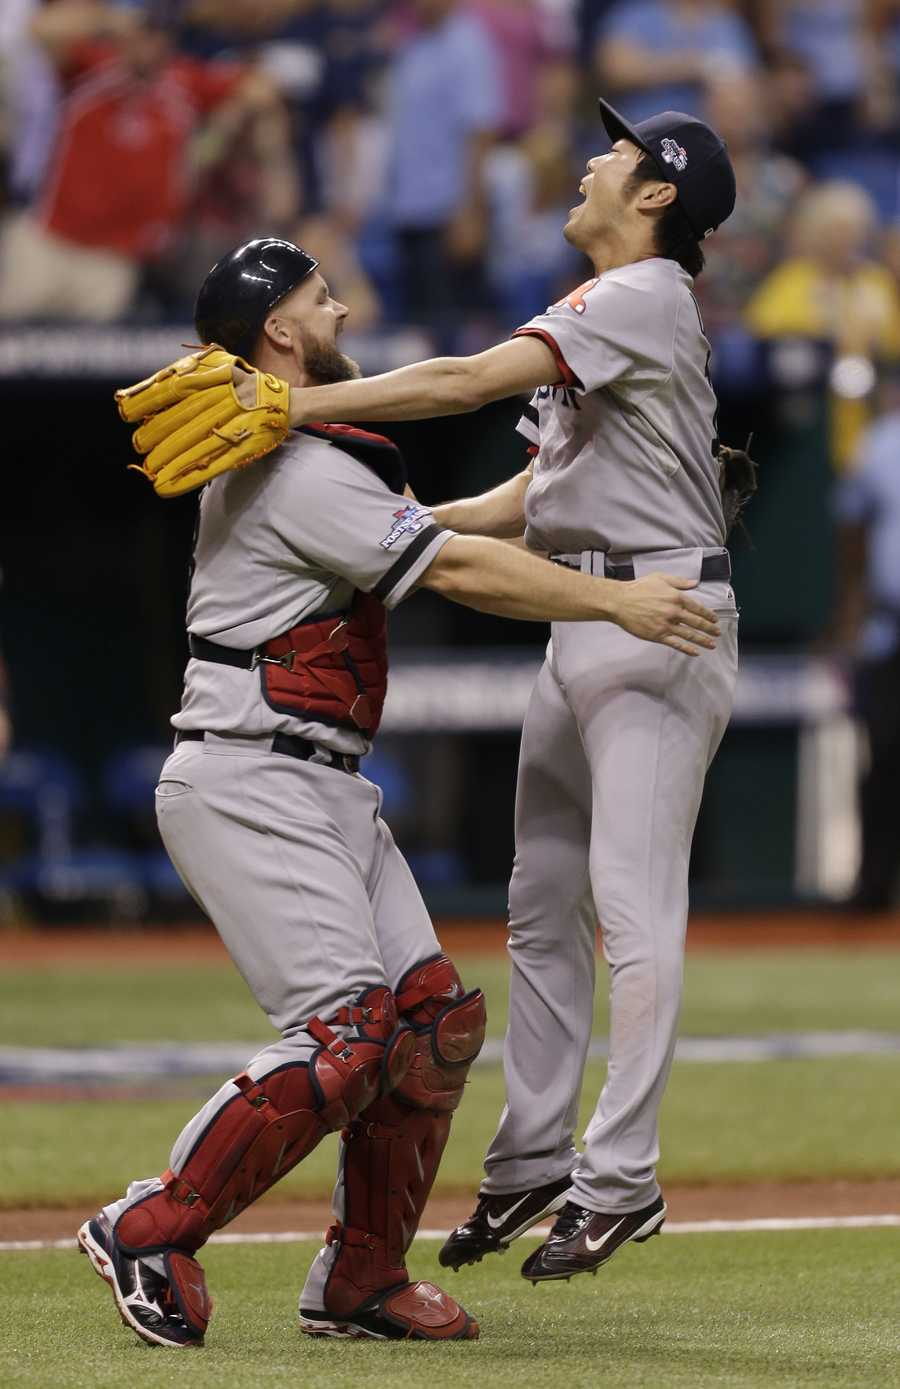 Boston Red Sox pitcher Koji Uehara, right, jumps on catcher Jarrod Saltalamacchia, after the team defeated the Tampa Bay Rays.